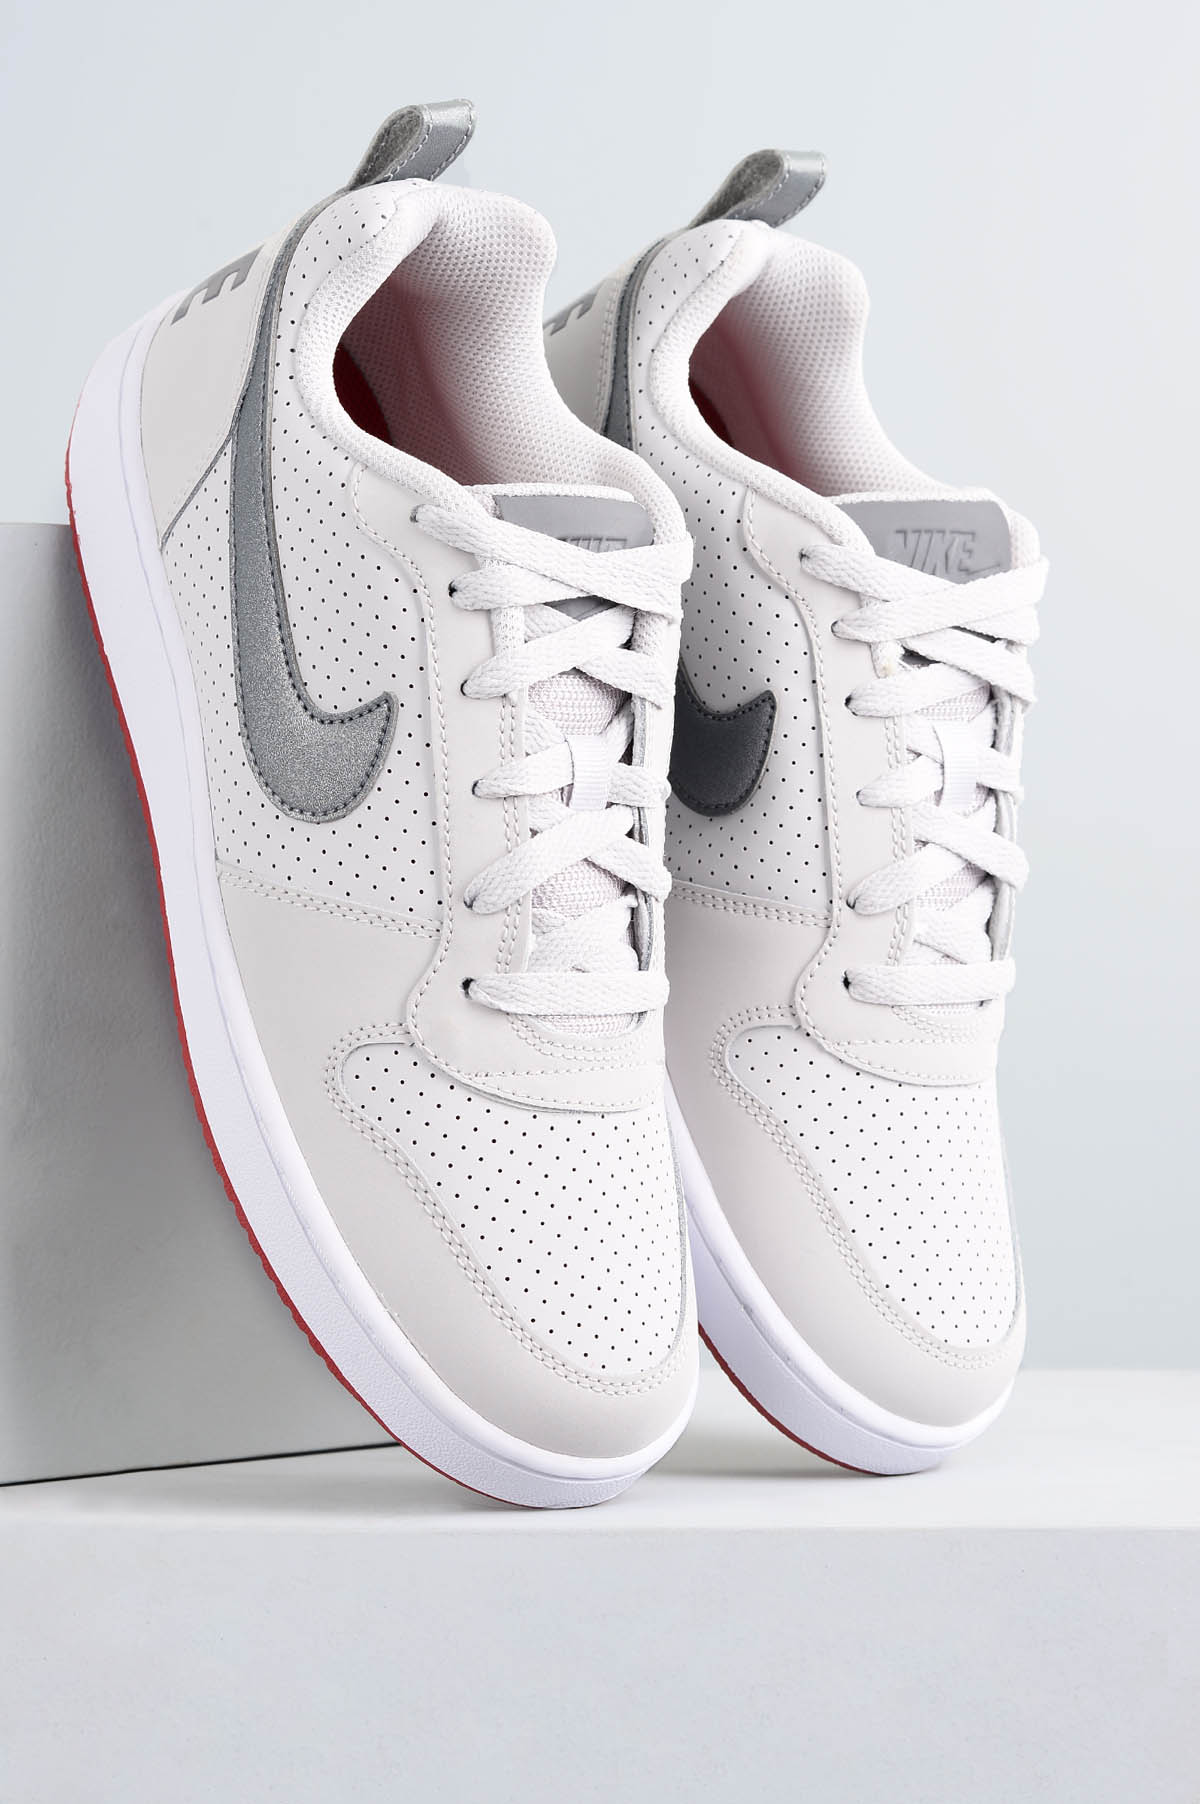 Tênis Nike Court Borough Low DIVERSOS - PRATA - Mundial Calçados c270100308c57